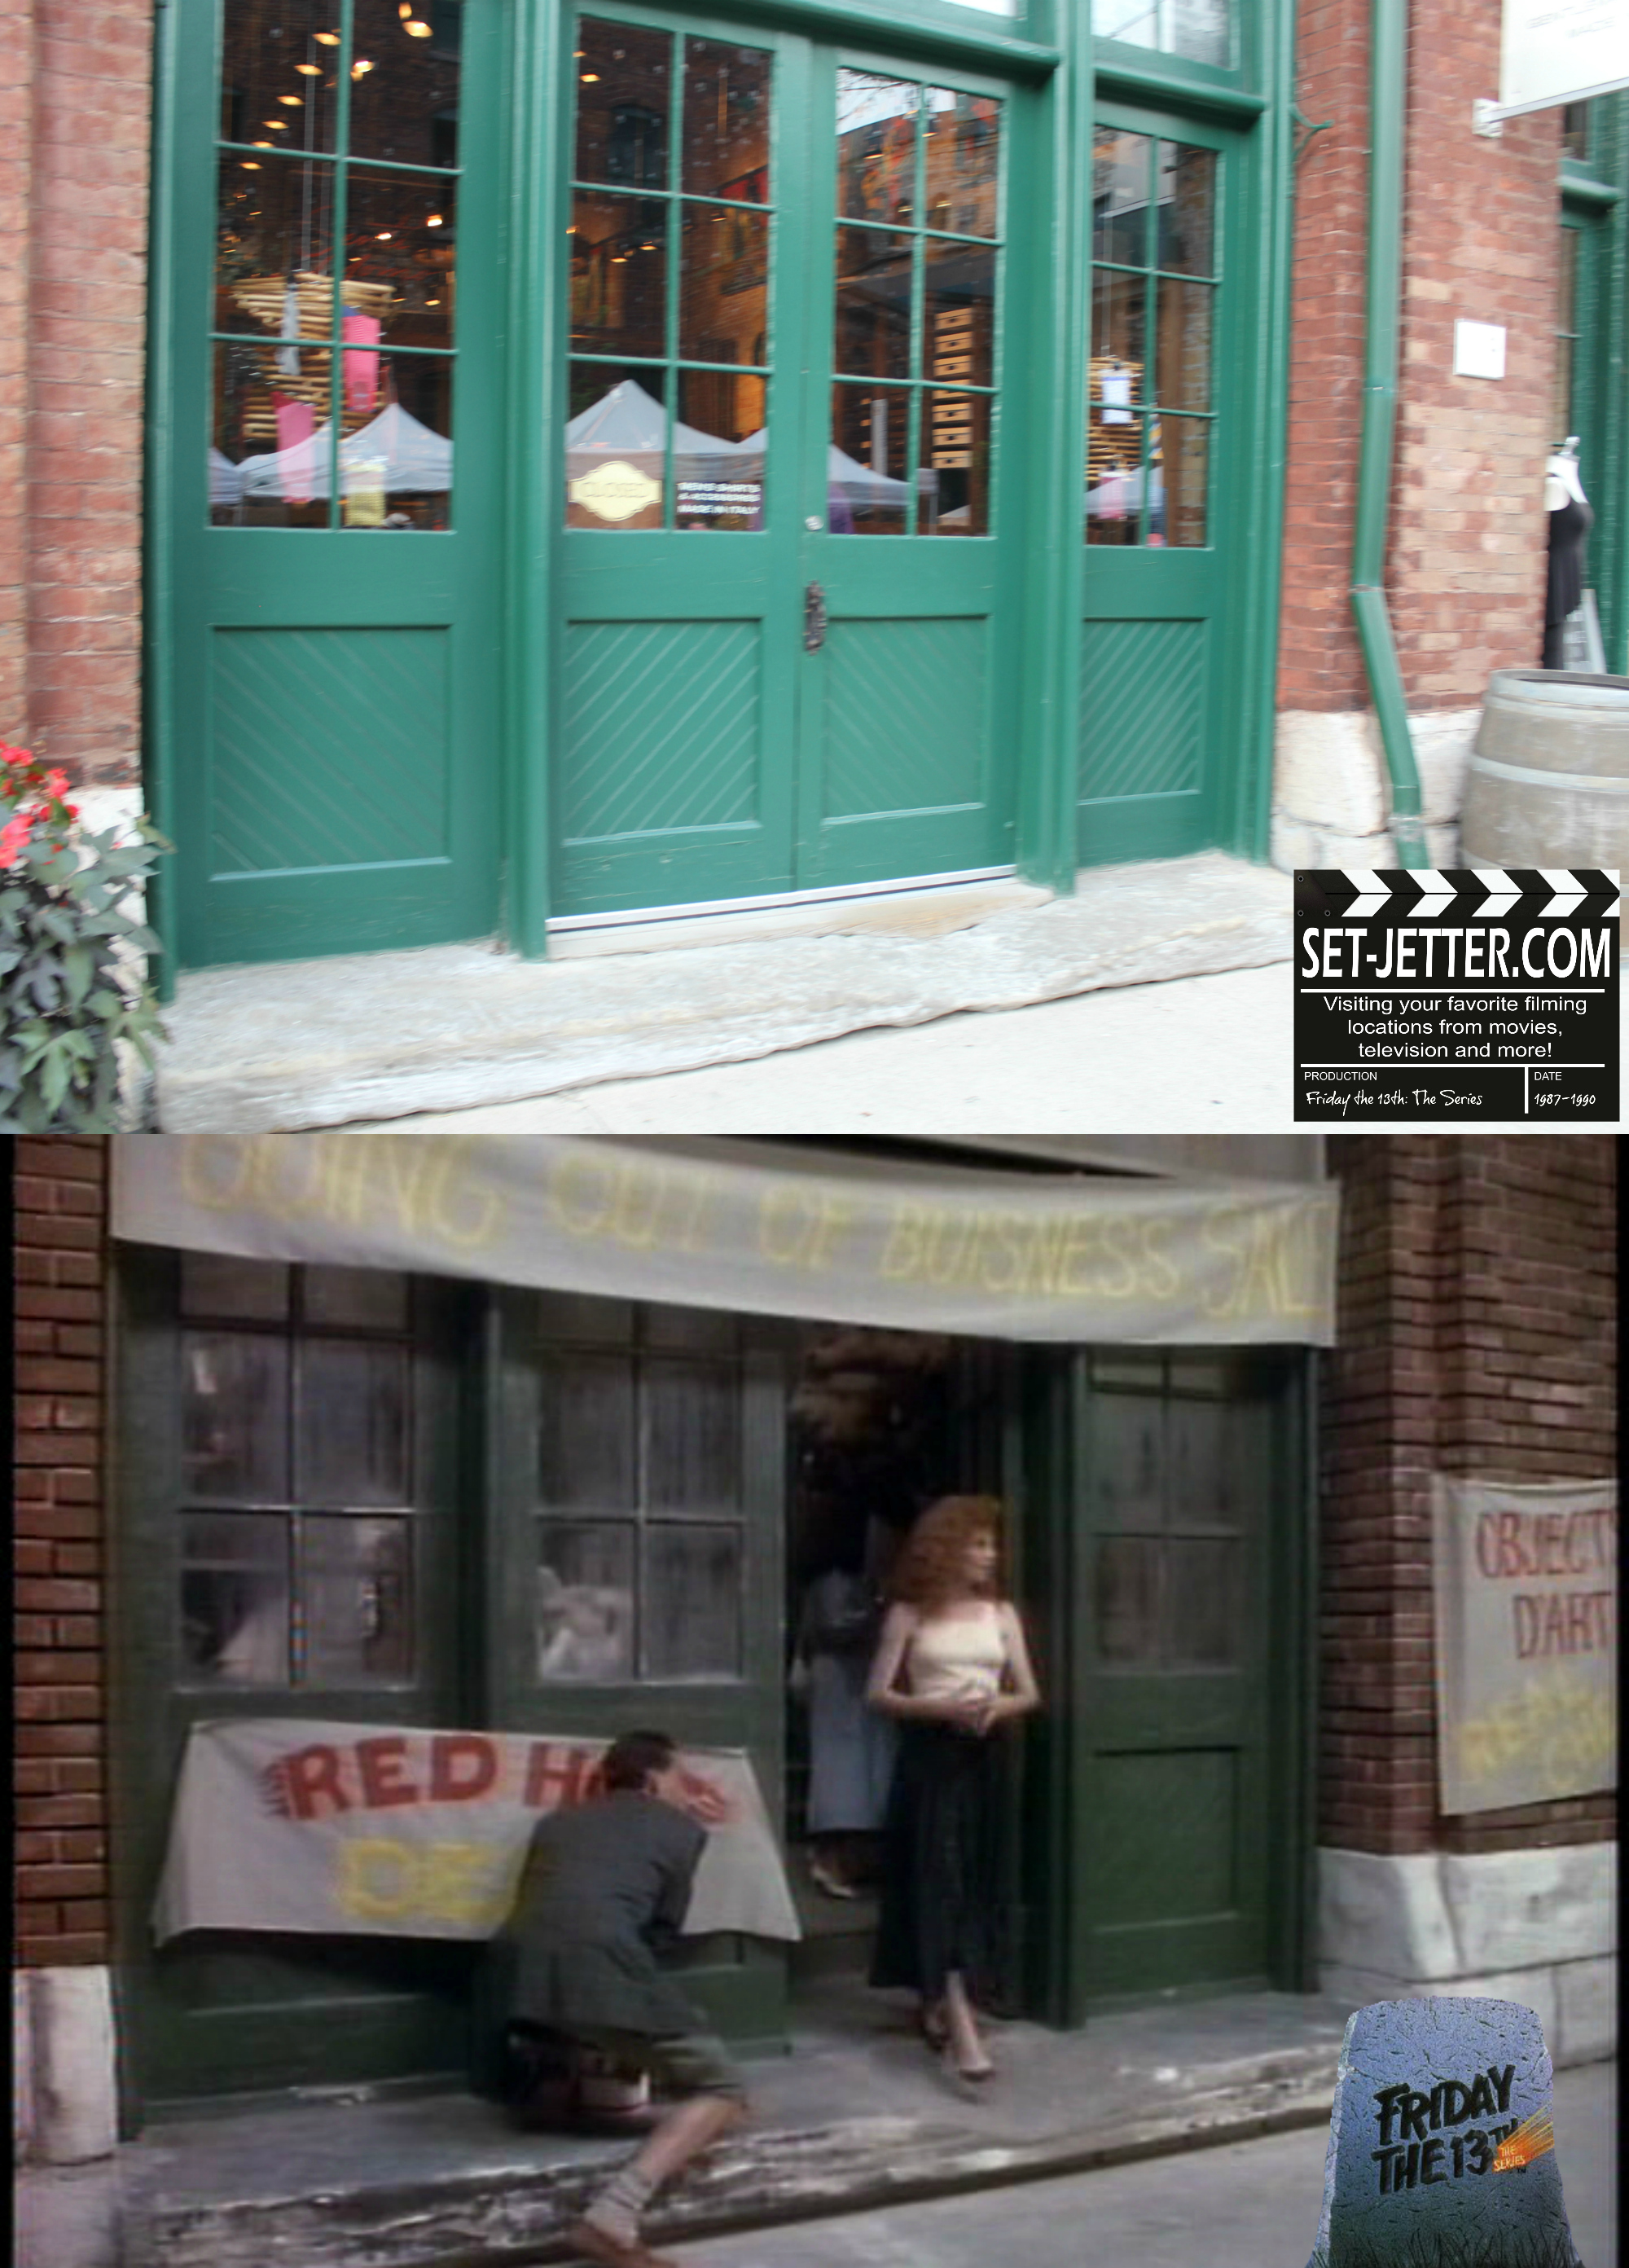 Friday the 13th The Series comparison 15.jpg